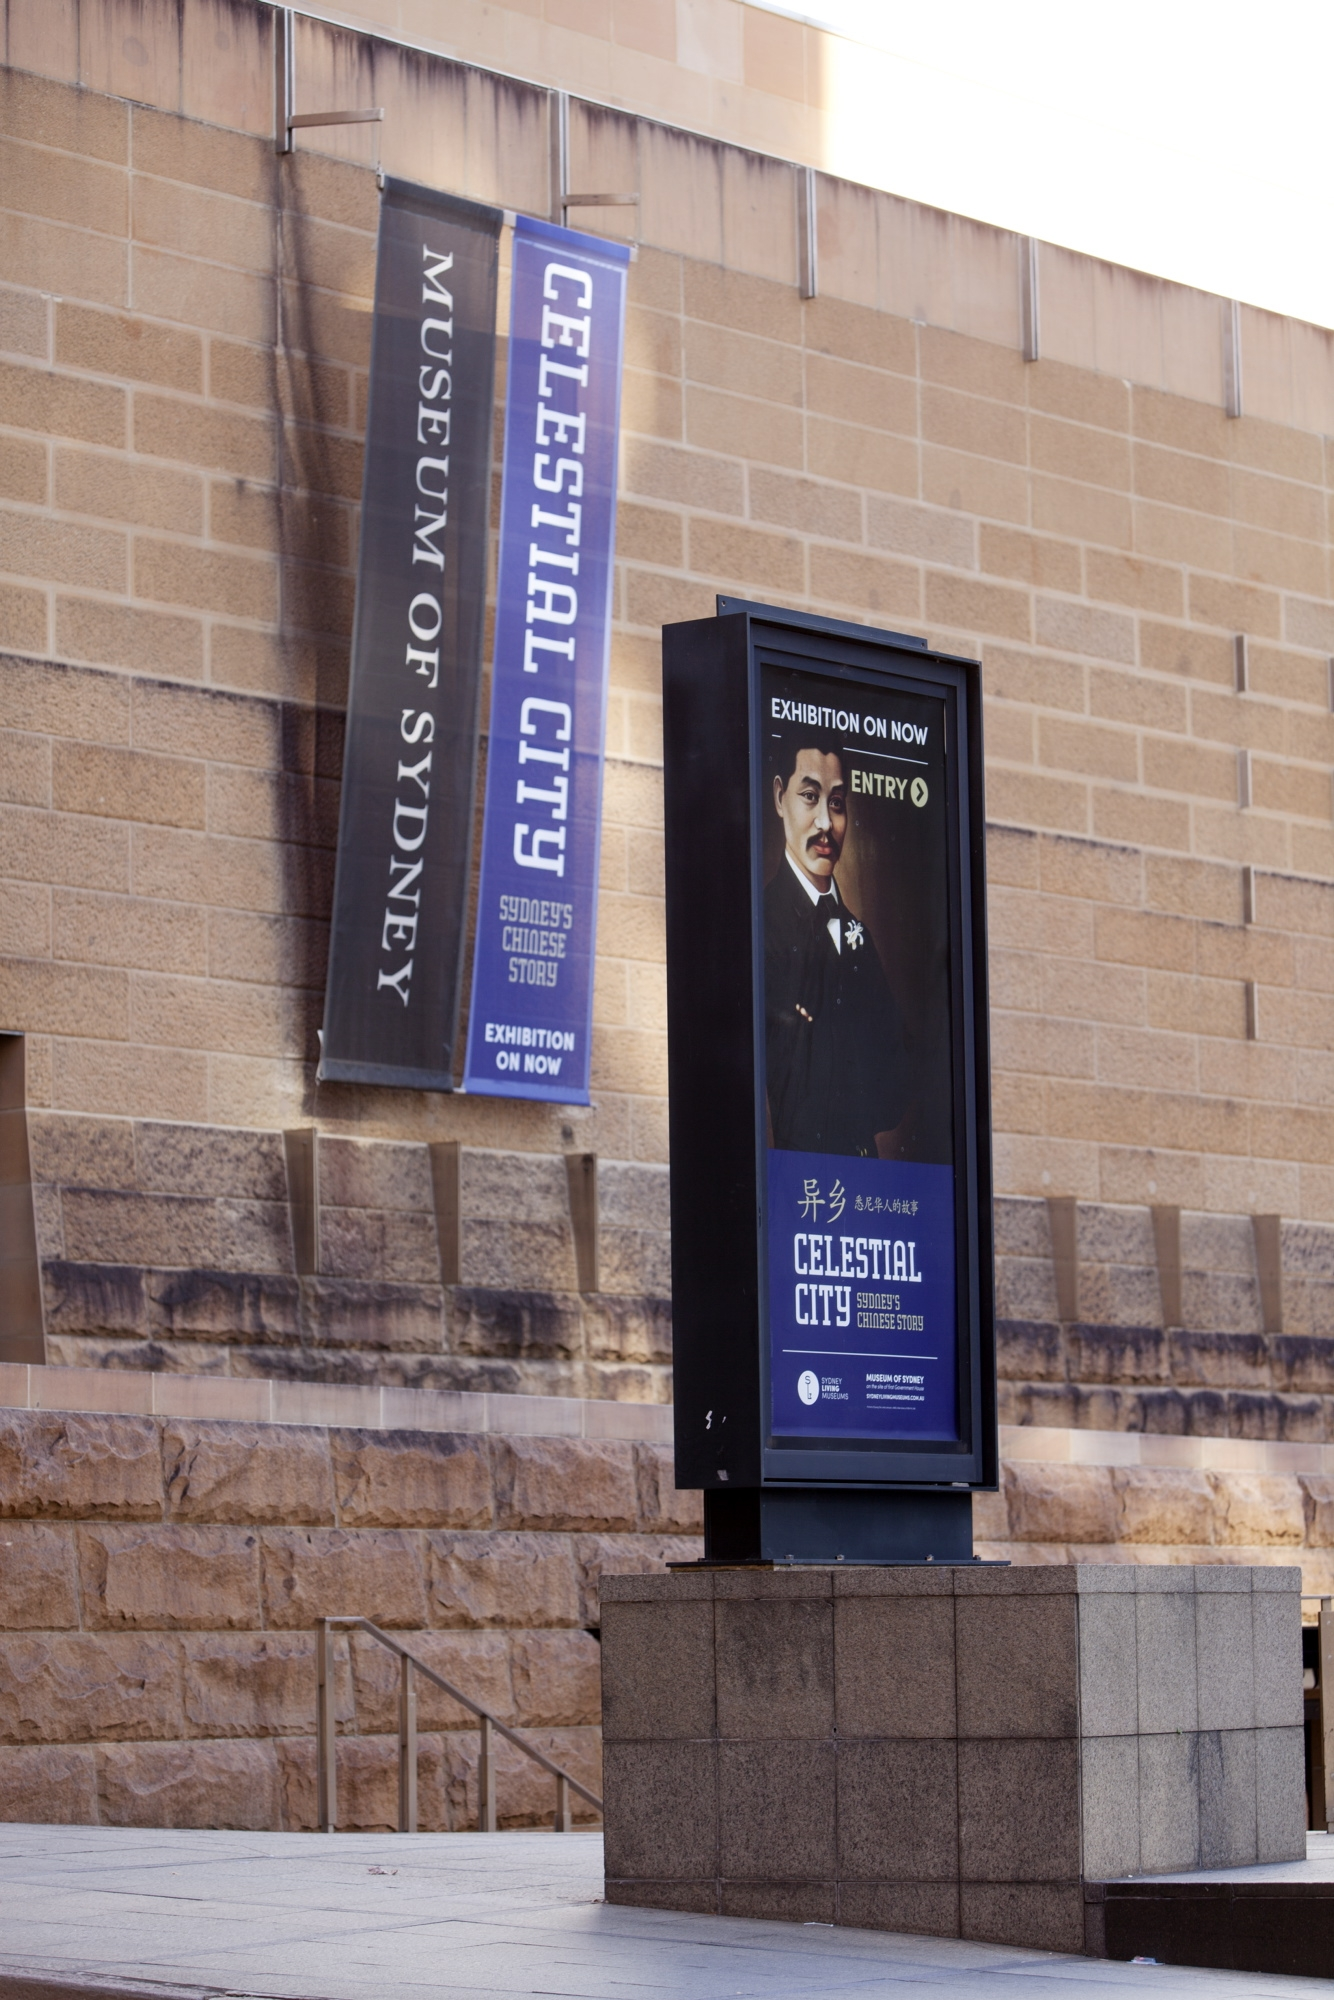 This is a photograph of a building banner advertising the Celestial City exhibition and a large scale poster featuring a portrait of Quong Tart